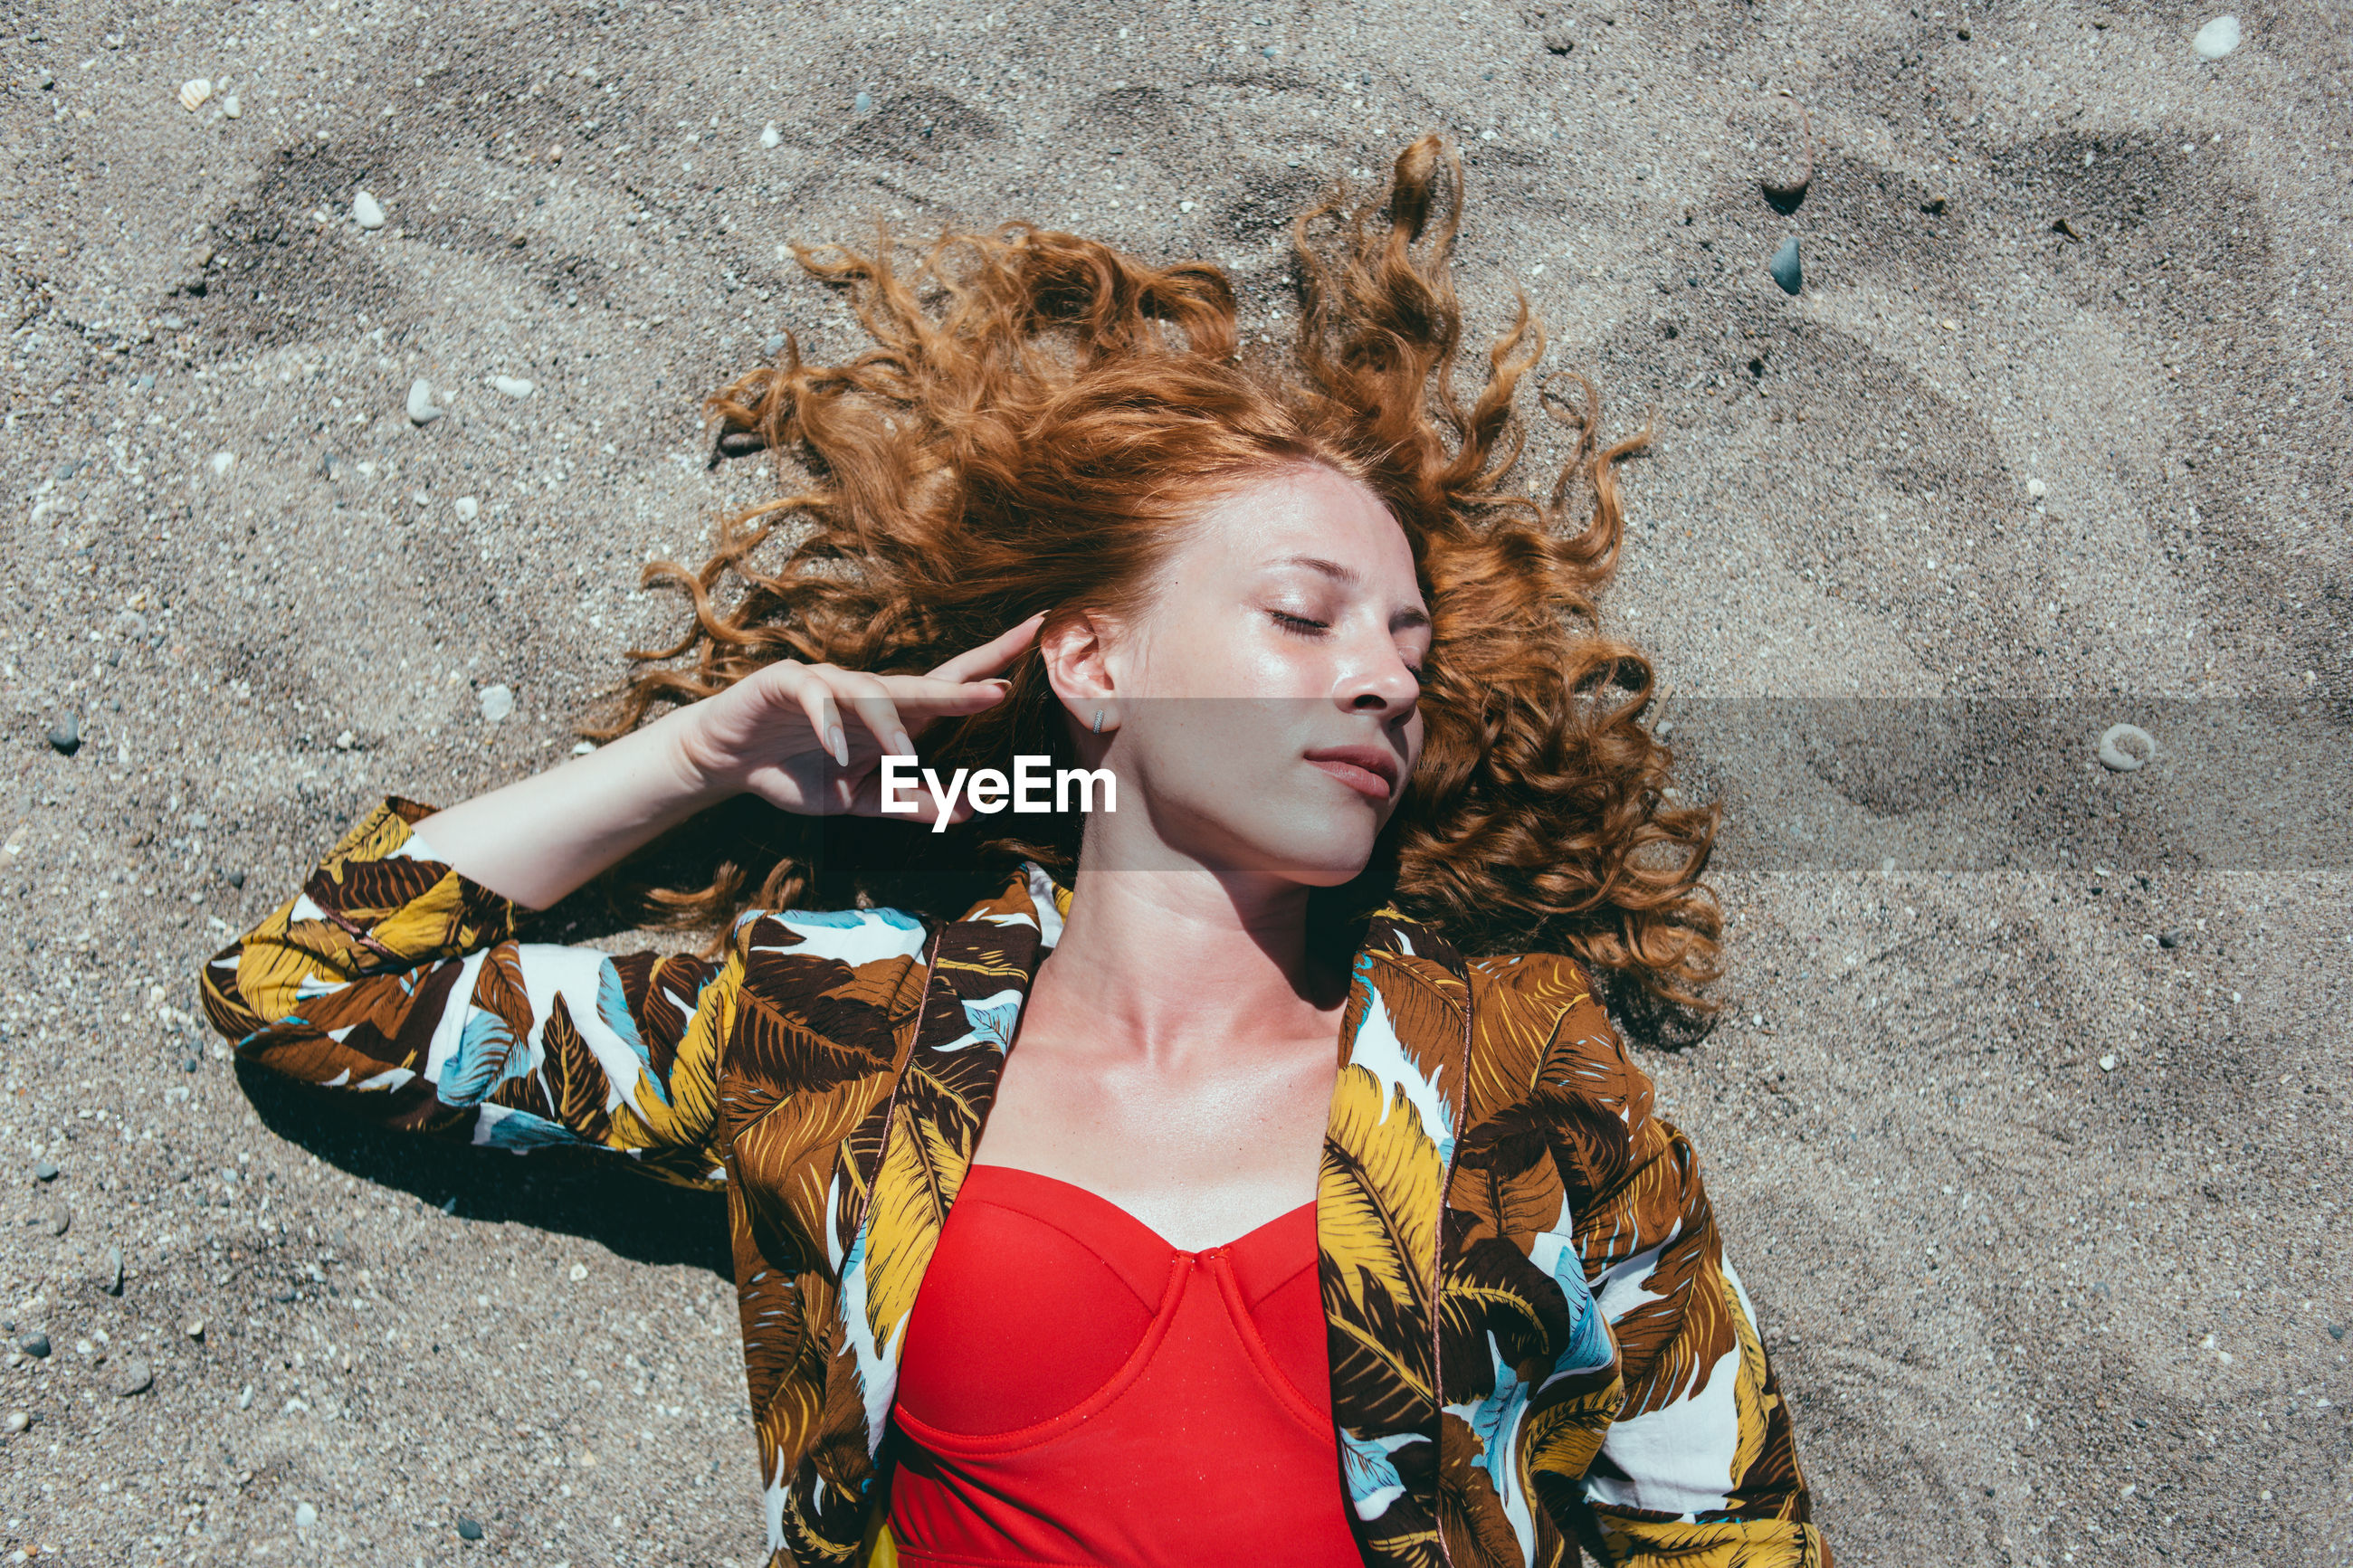 High angle view of young woman with eyes closed lying on sand